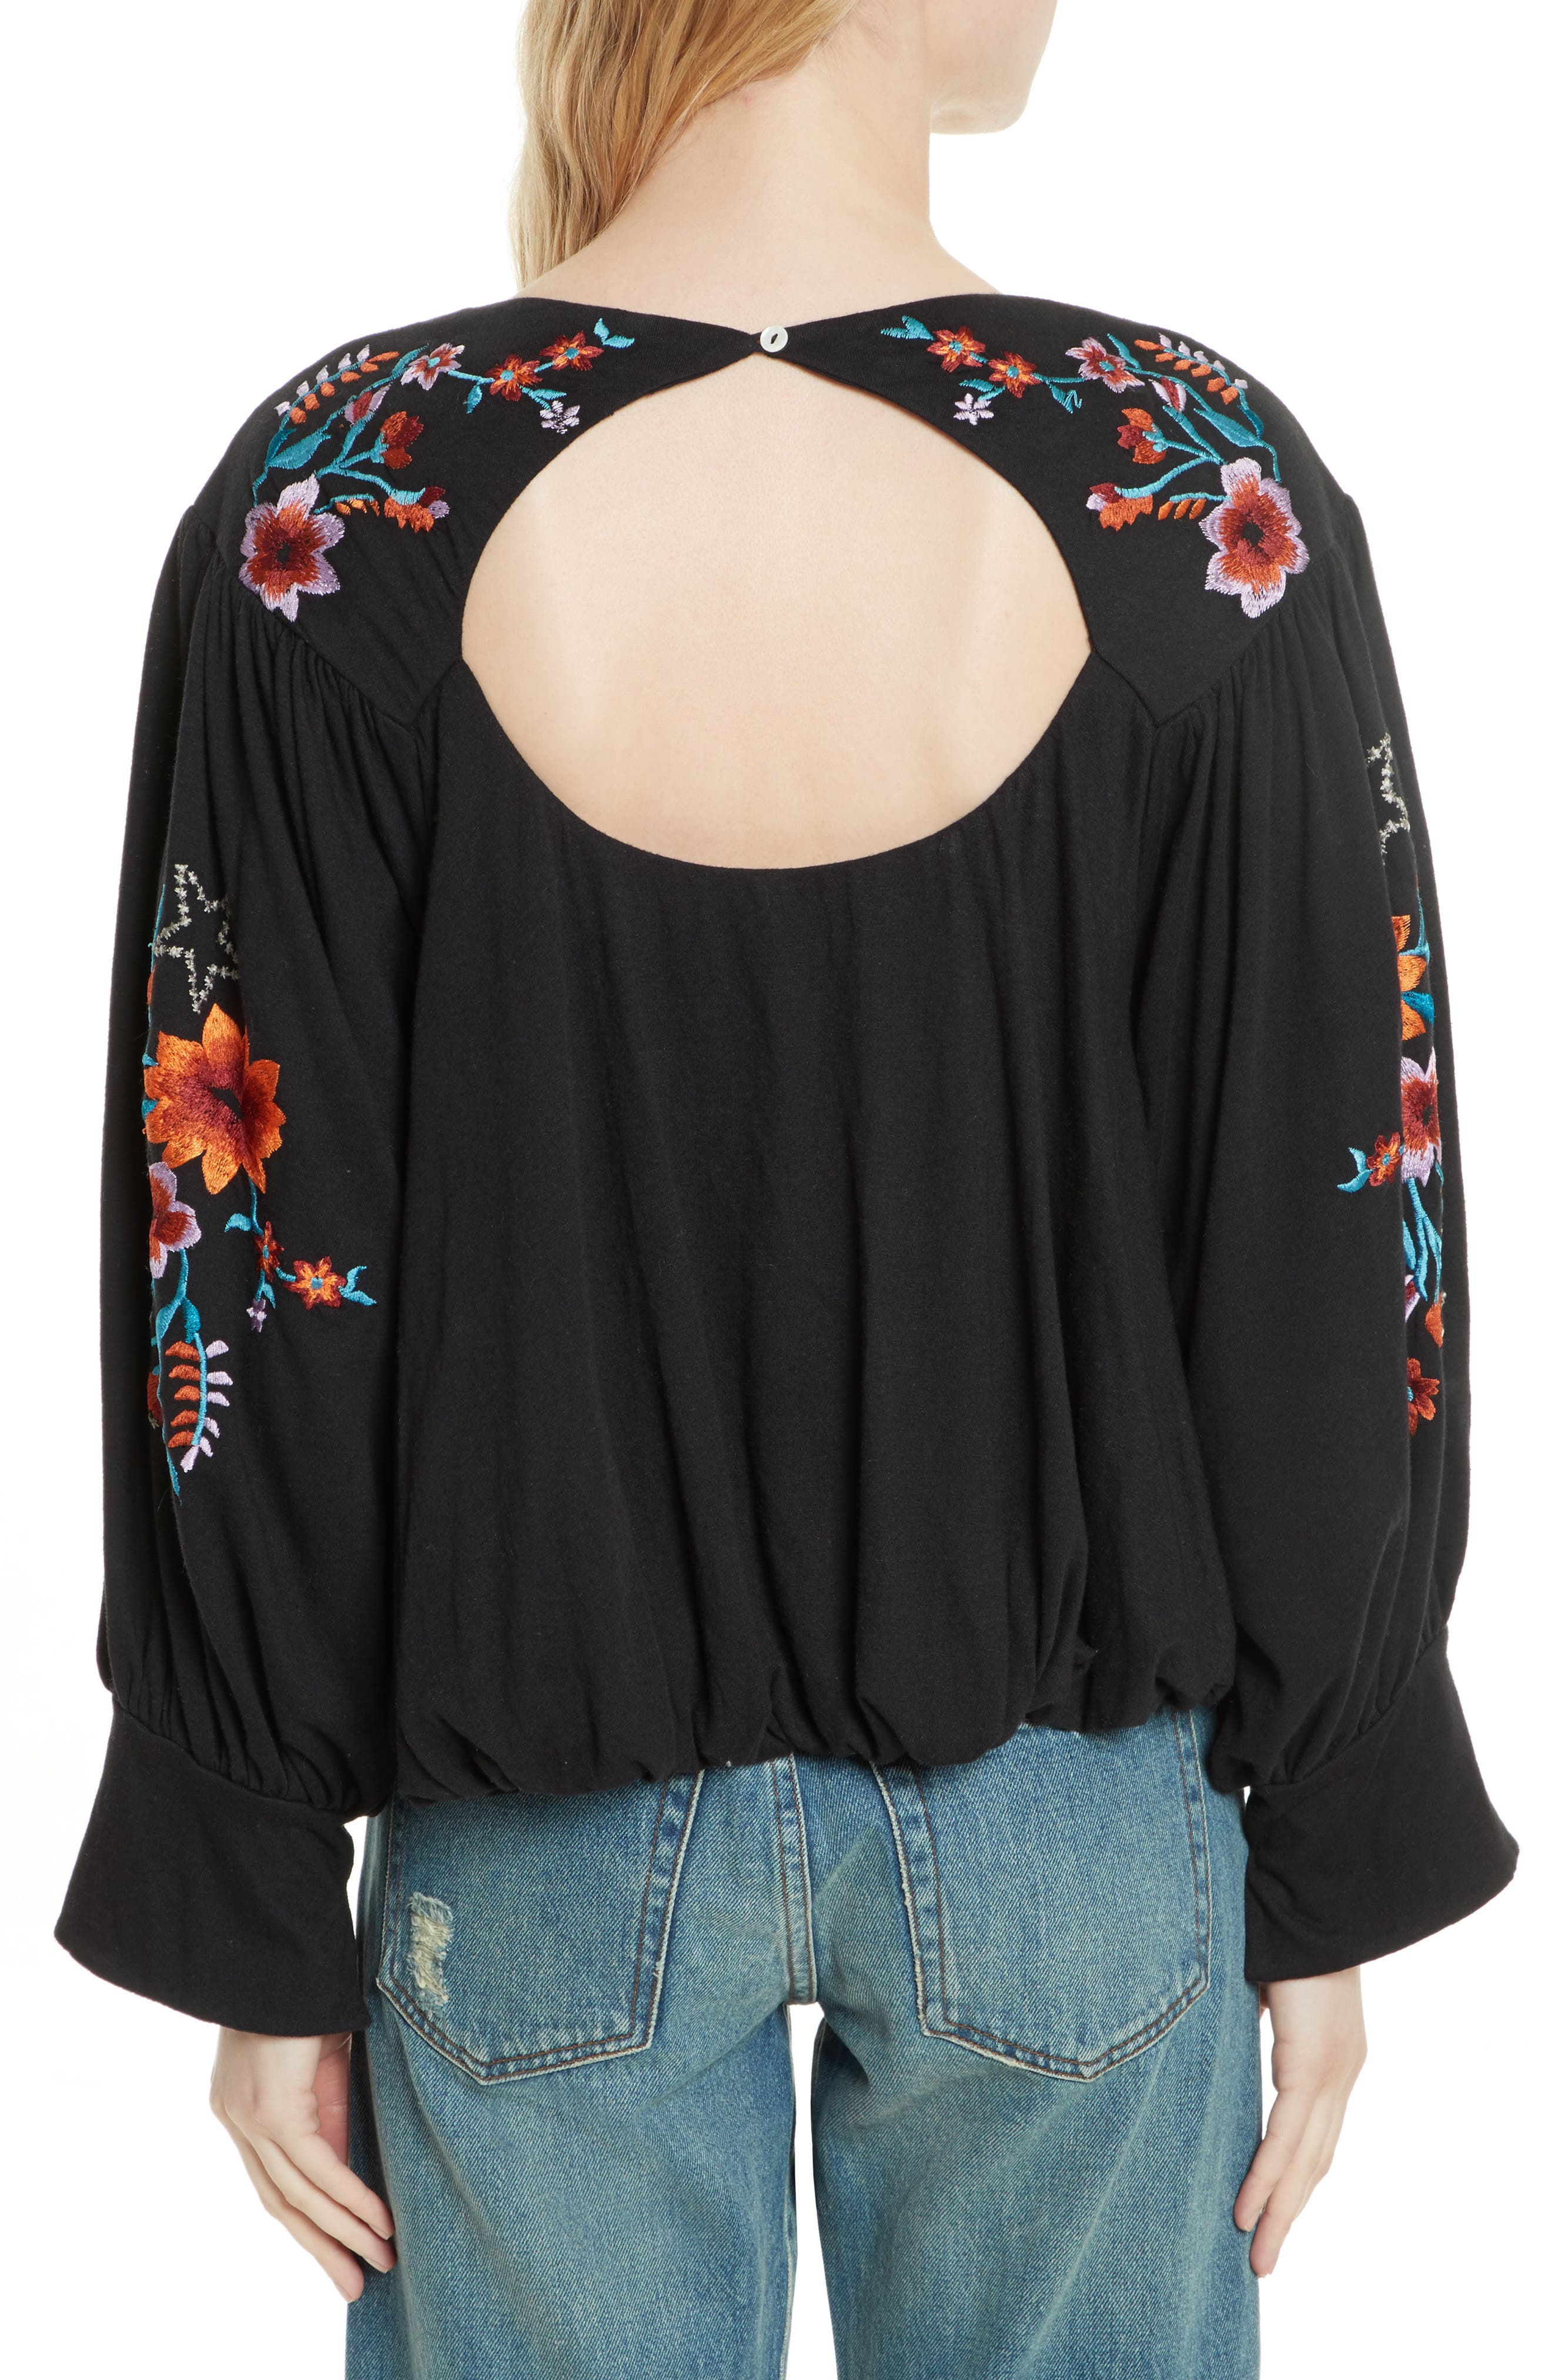 FREE PEOPLE,                             Lita Embroidered Bell Sleeve Top,                             Alternate thumbnail 2, color,                             001